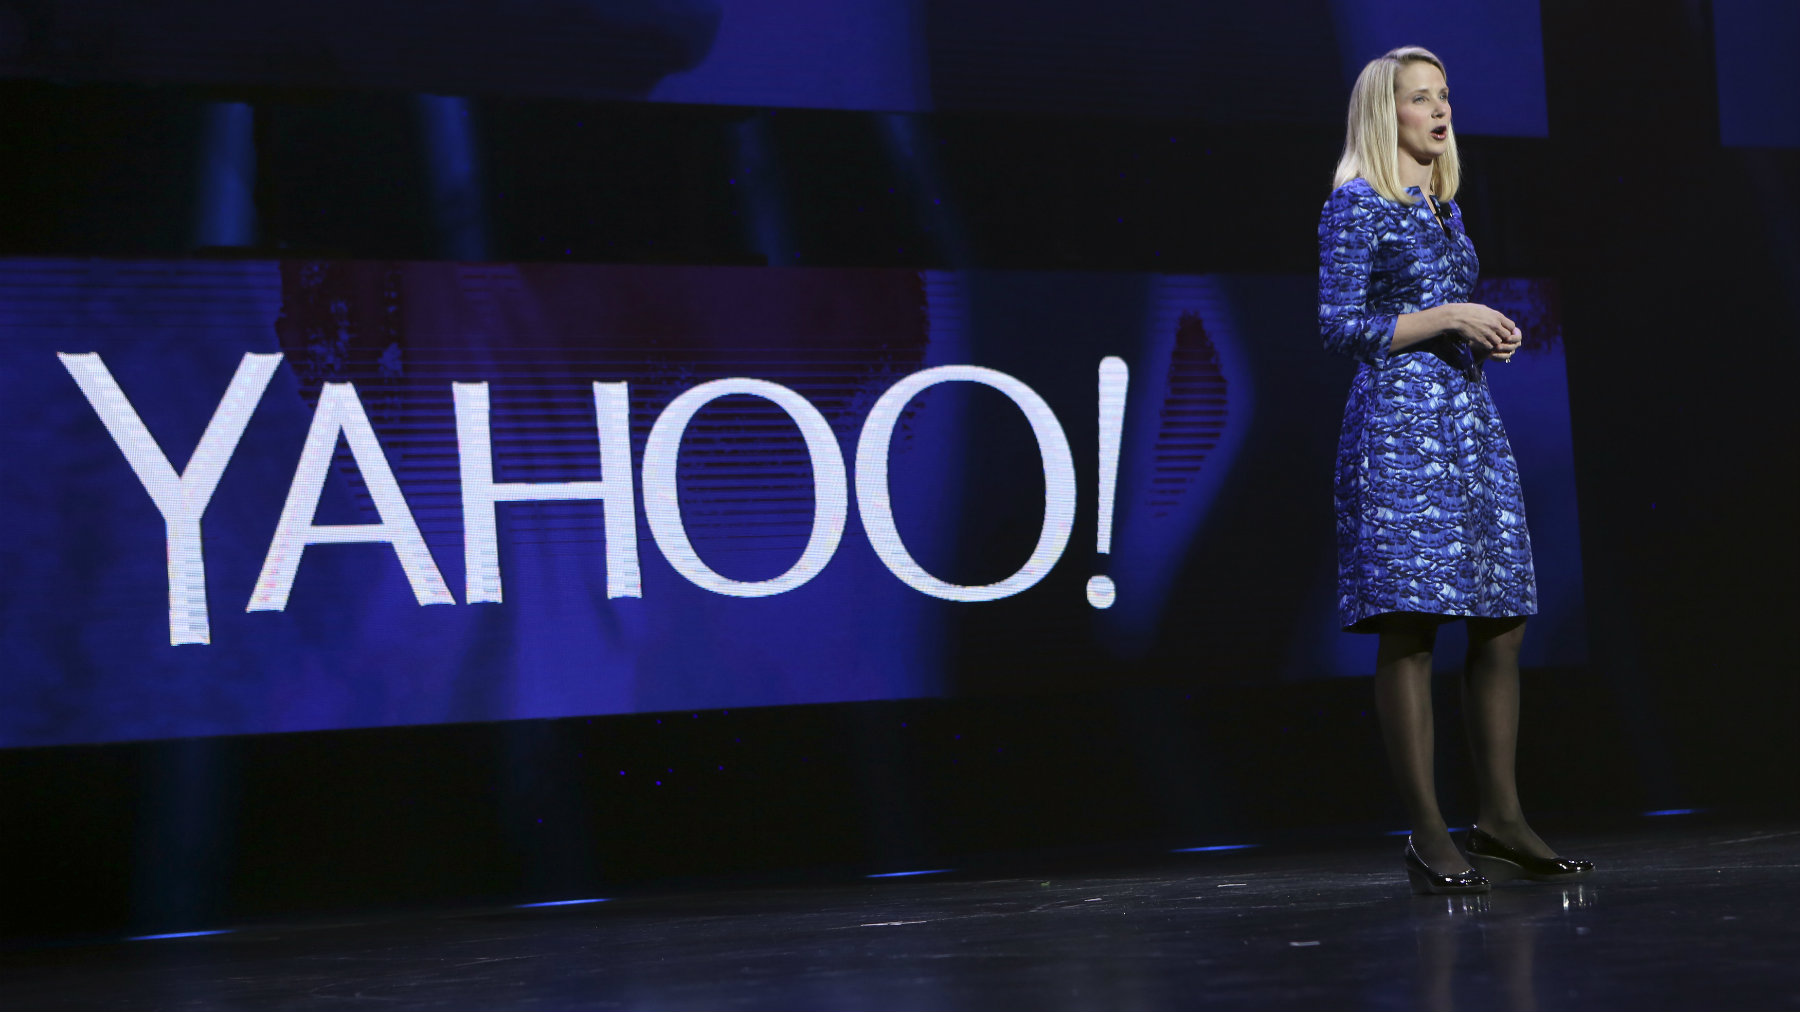 Yahoo CEO Marissa Mayer delivers her keynote address at the annual Consumer Electronics Show (CES) in Las Vegas, Nevada.